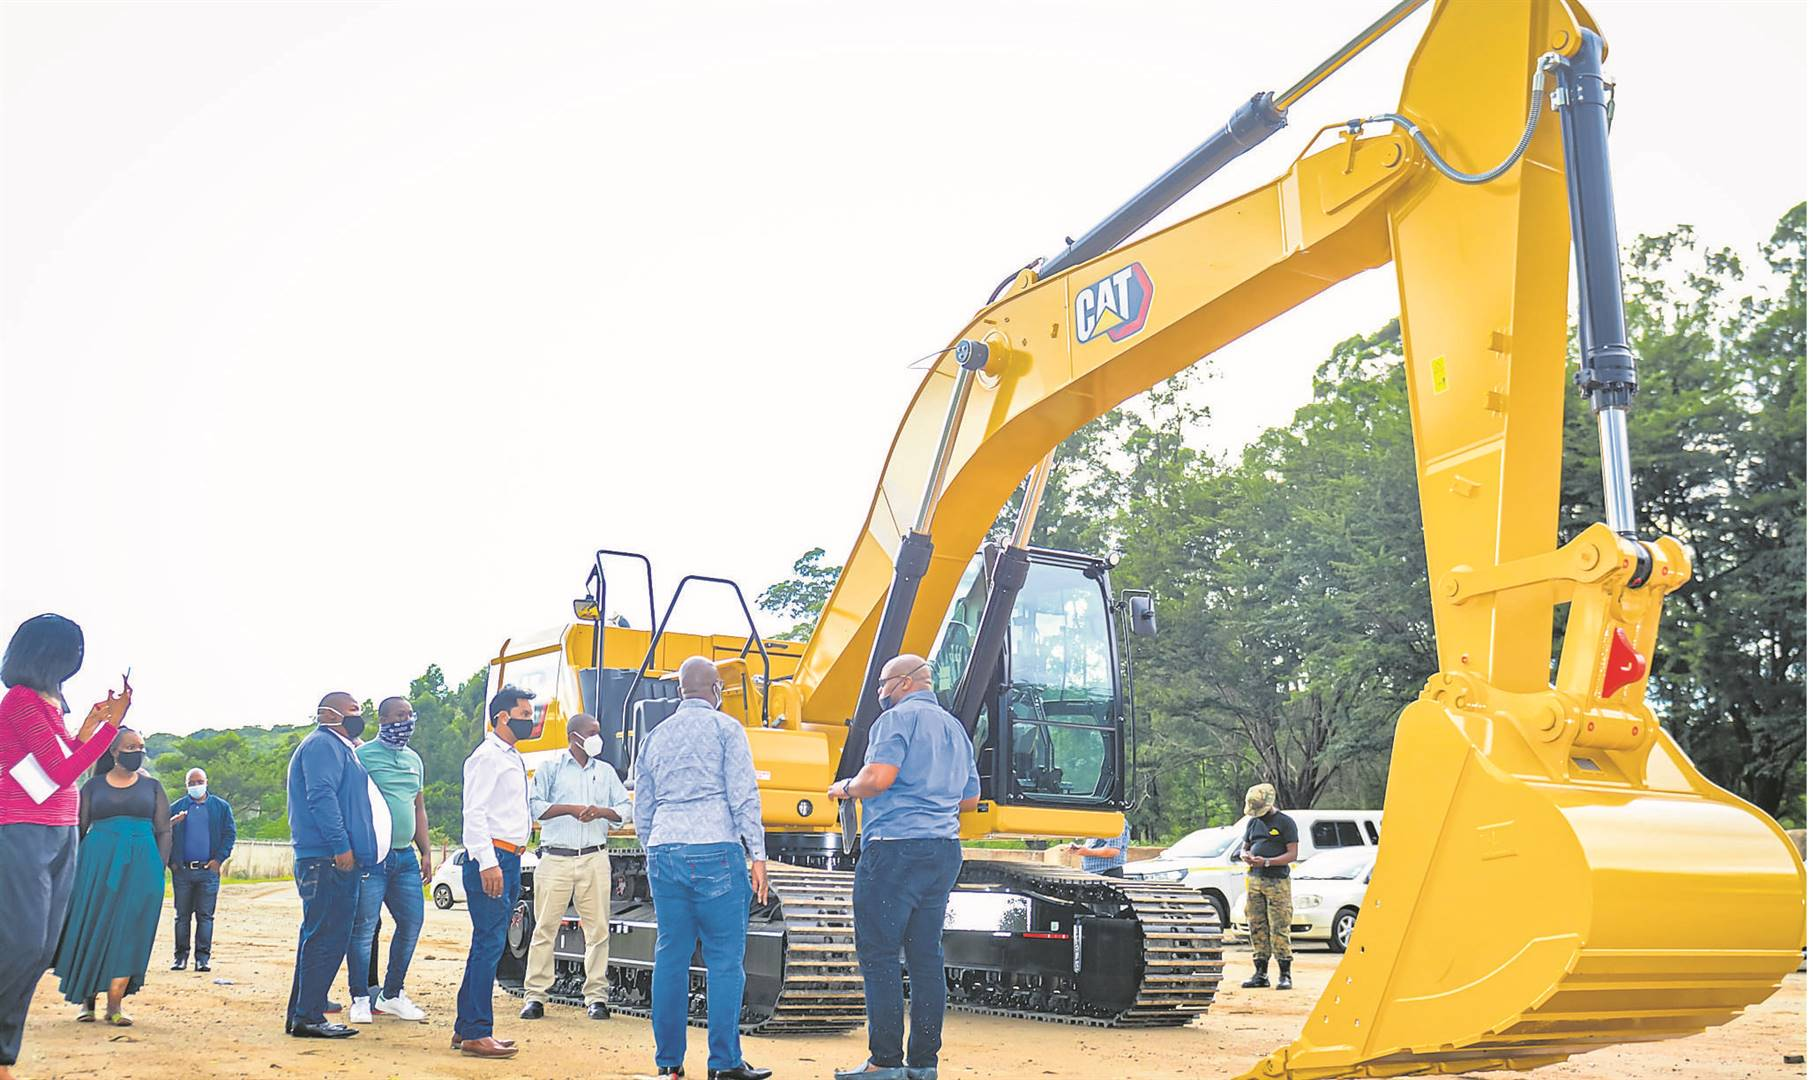 Msunduzi Municipality on Wednesday received a brand new 30-ton excavator for the New England Road landfill Site.